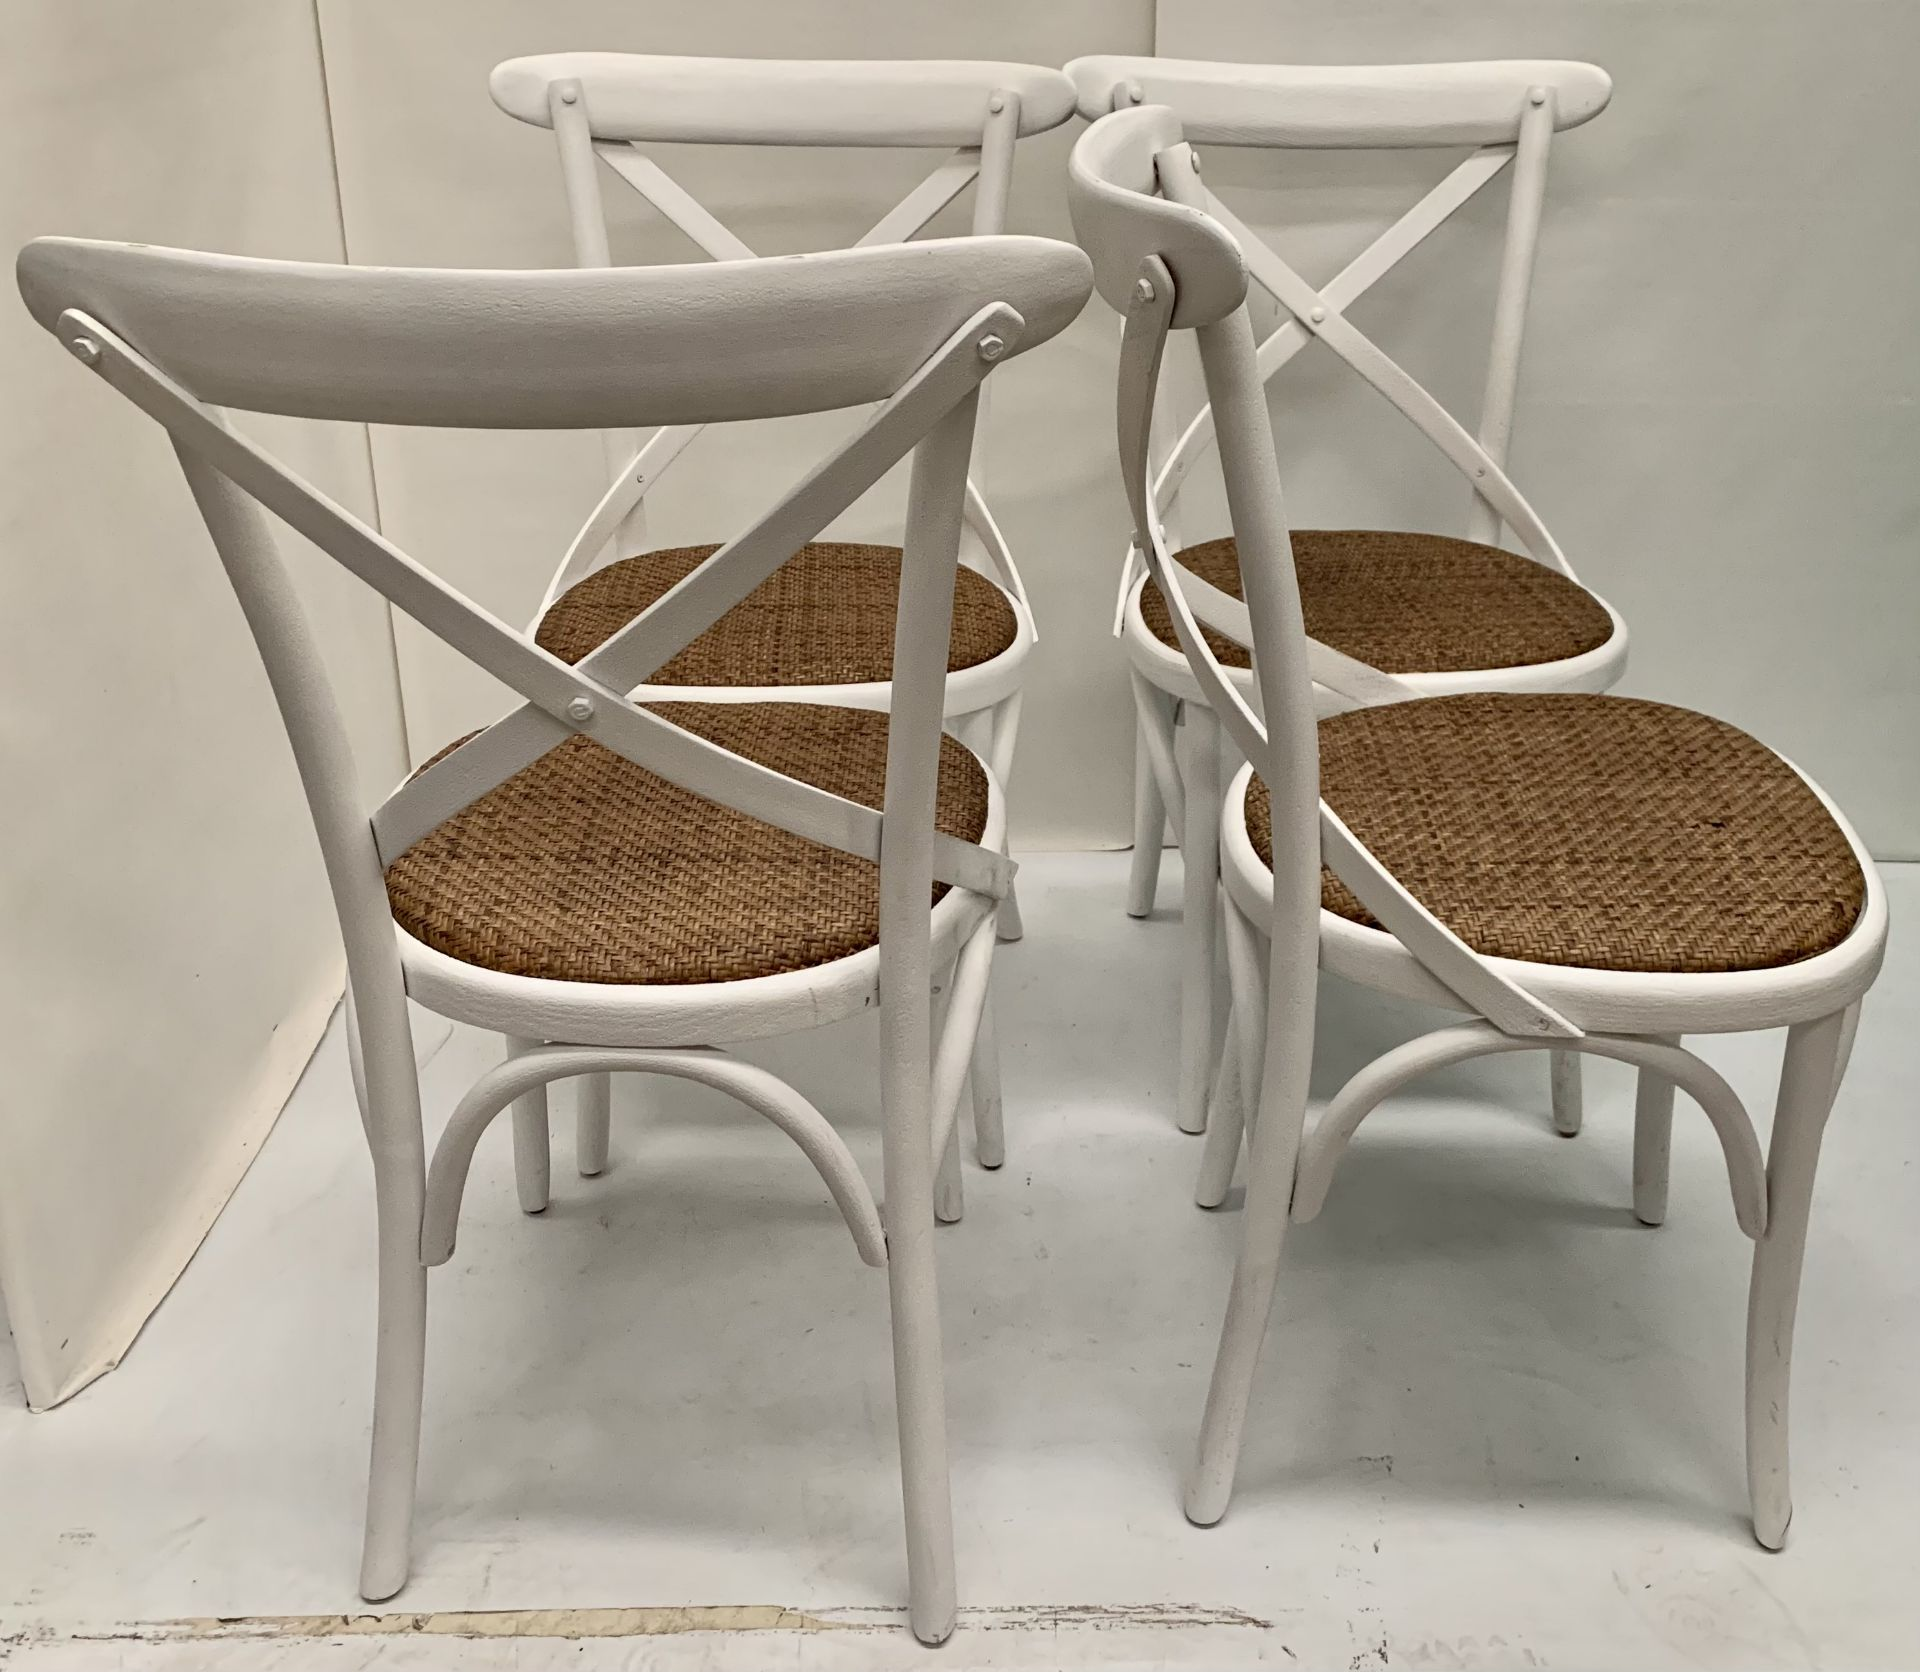 4 x Palm white wooden dining chairs with hessian seats, - Image 2 of 2